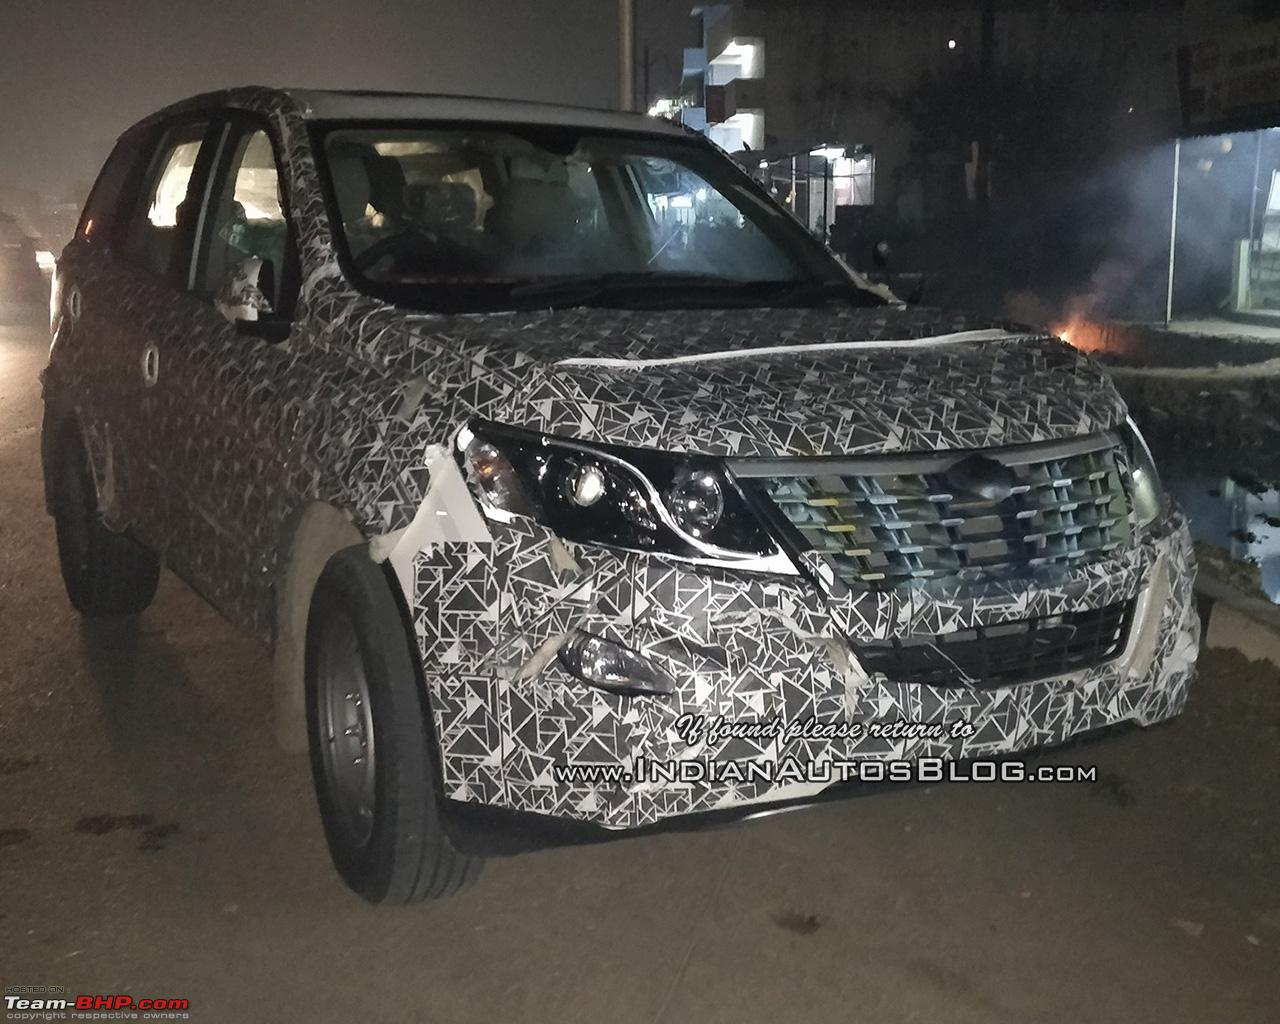 Mahindra Xuv500 Facelift Coming To Get Power Hike Edit Now